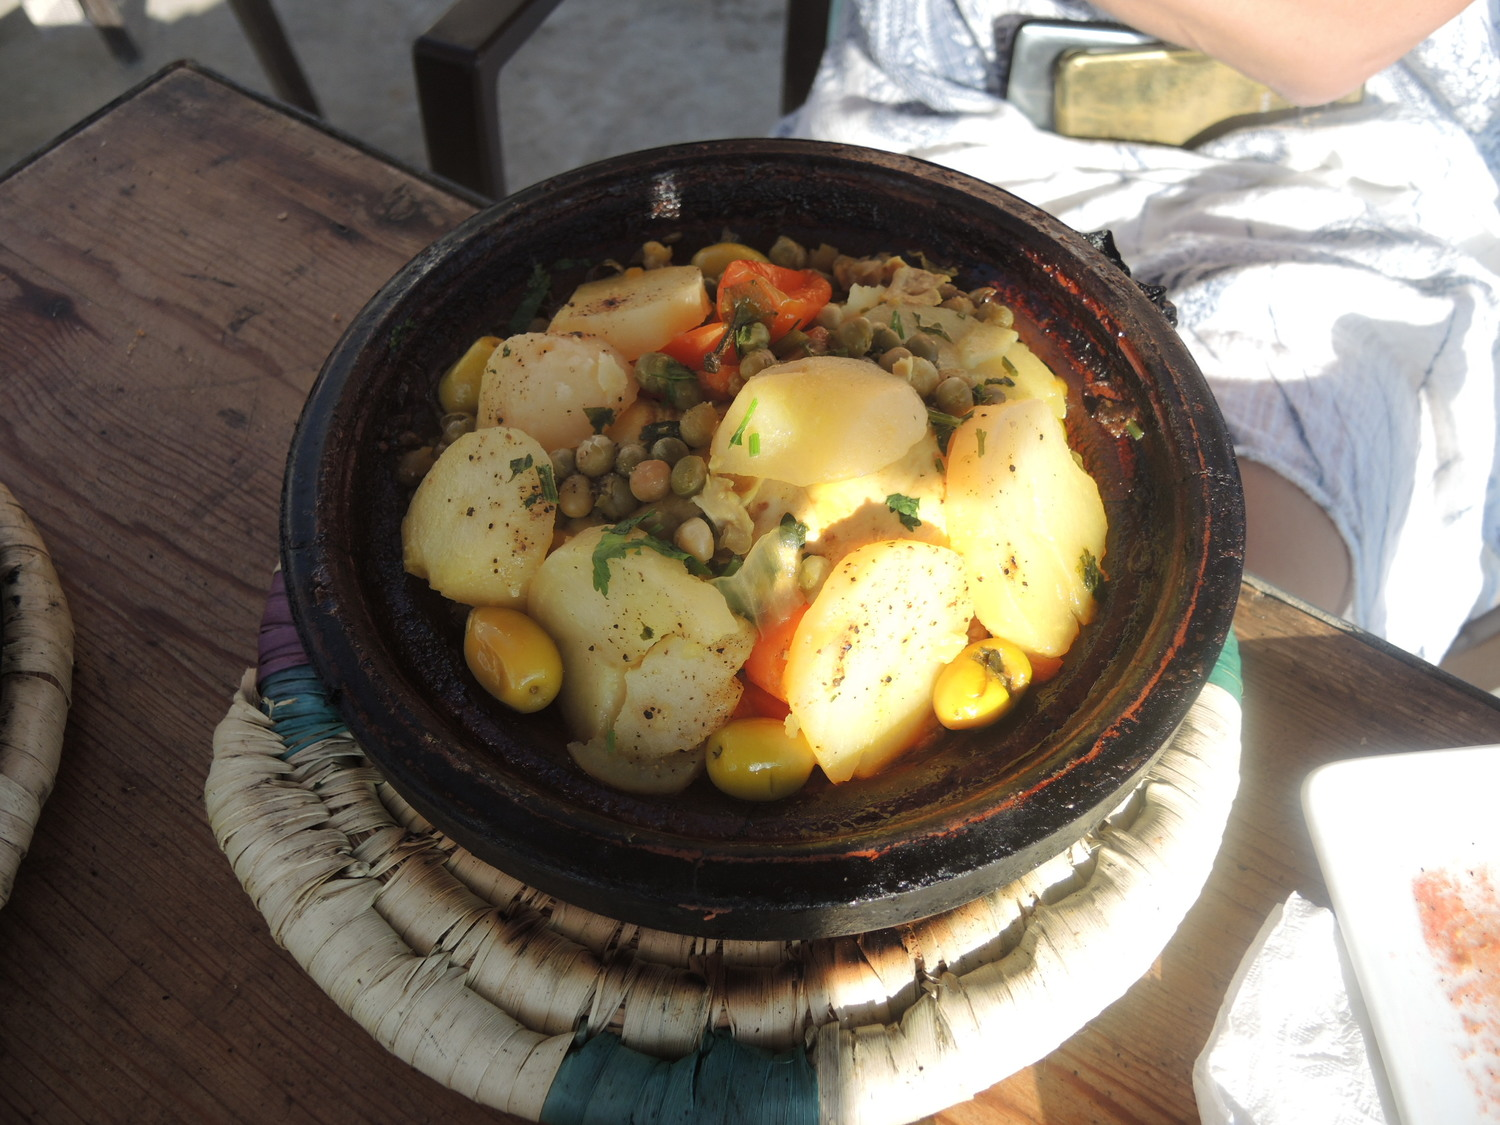 Vegetable tagine in Morocco